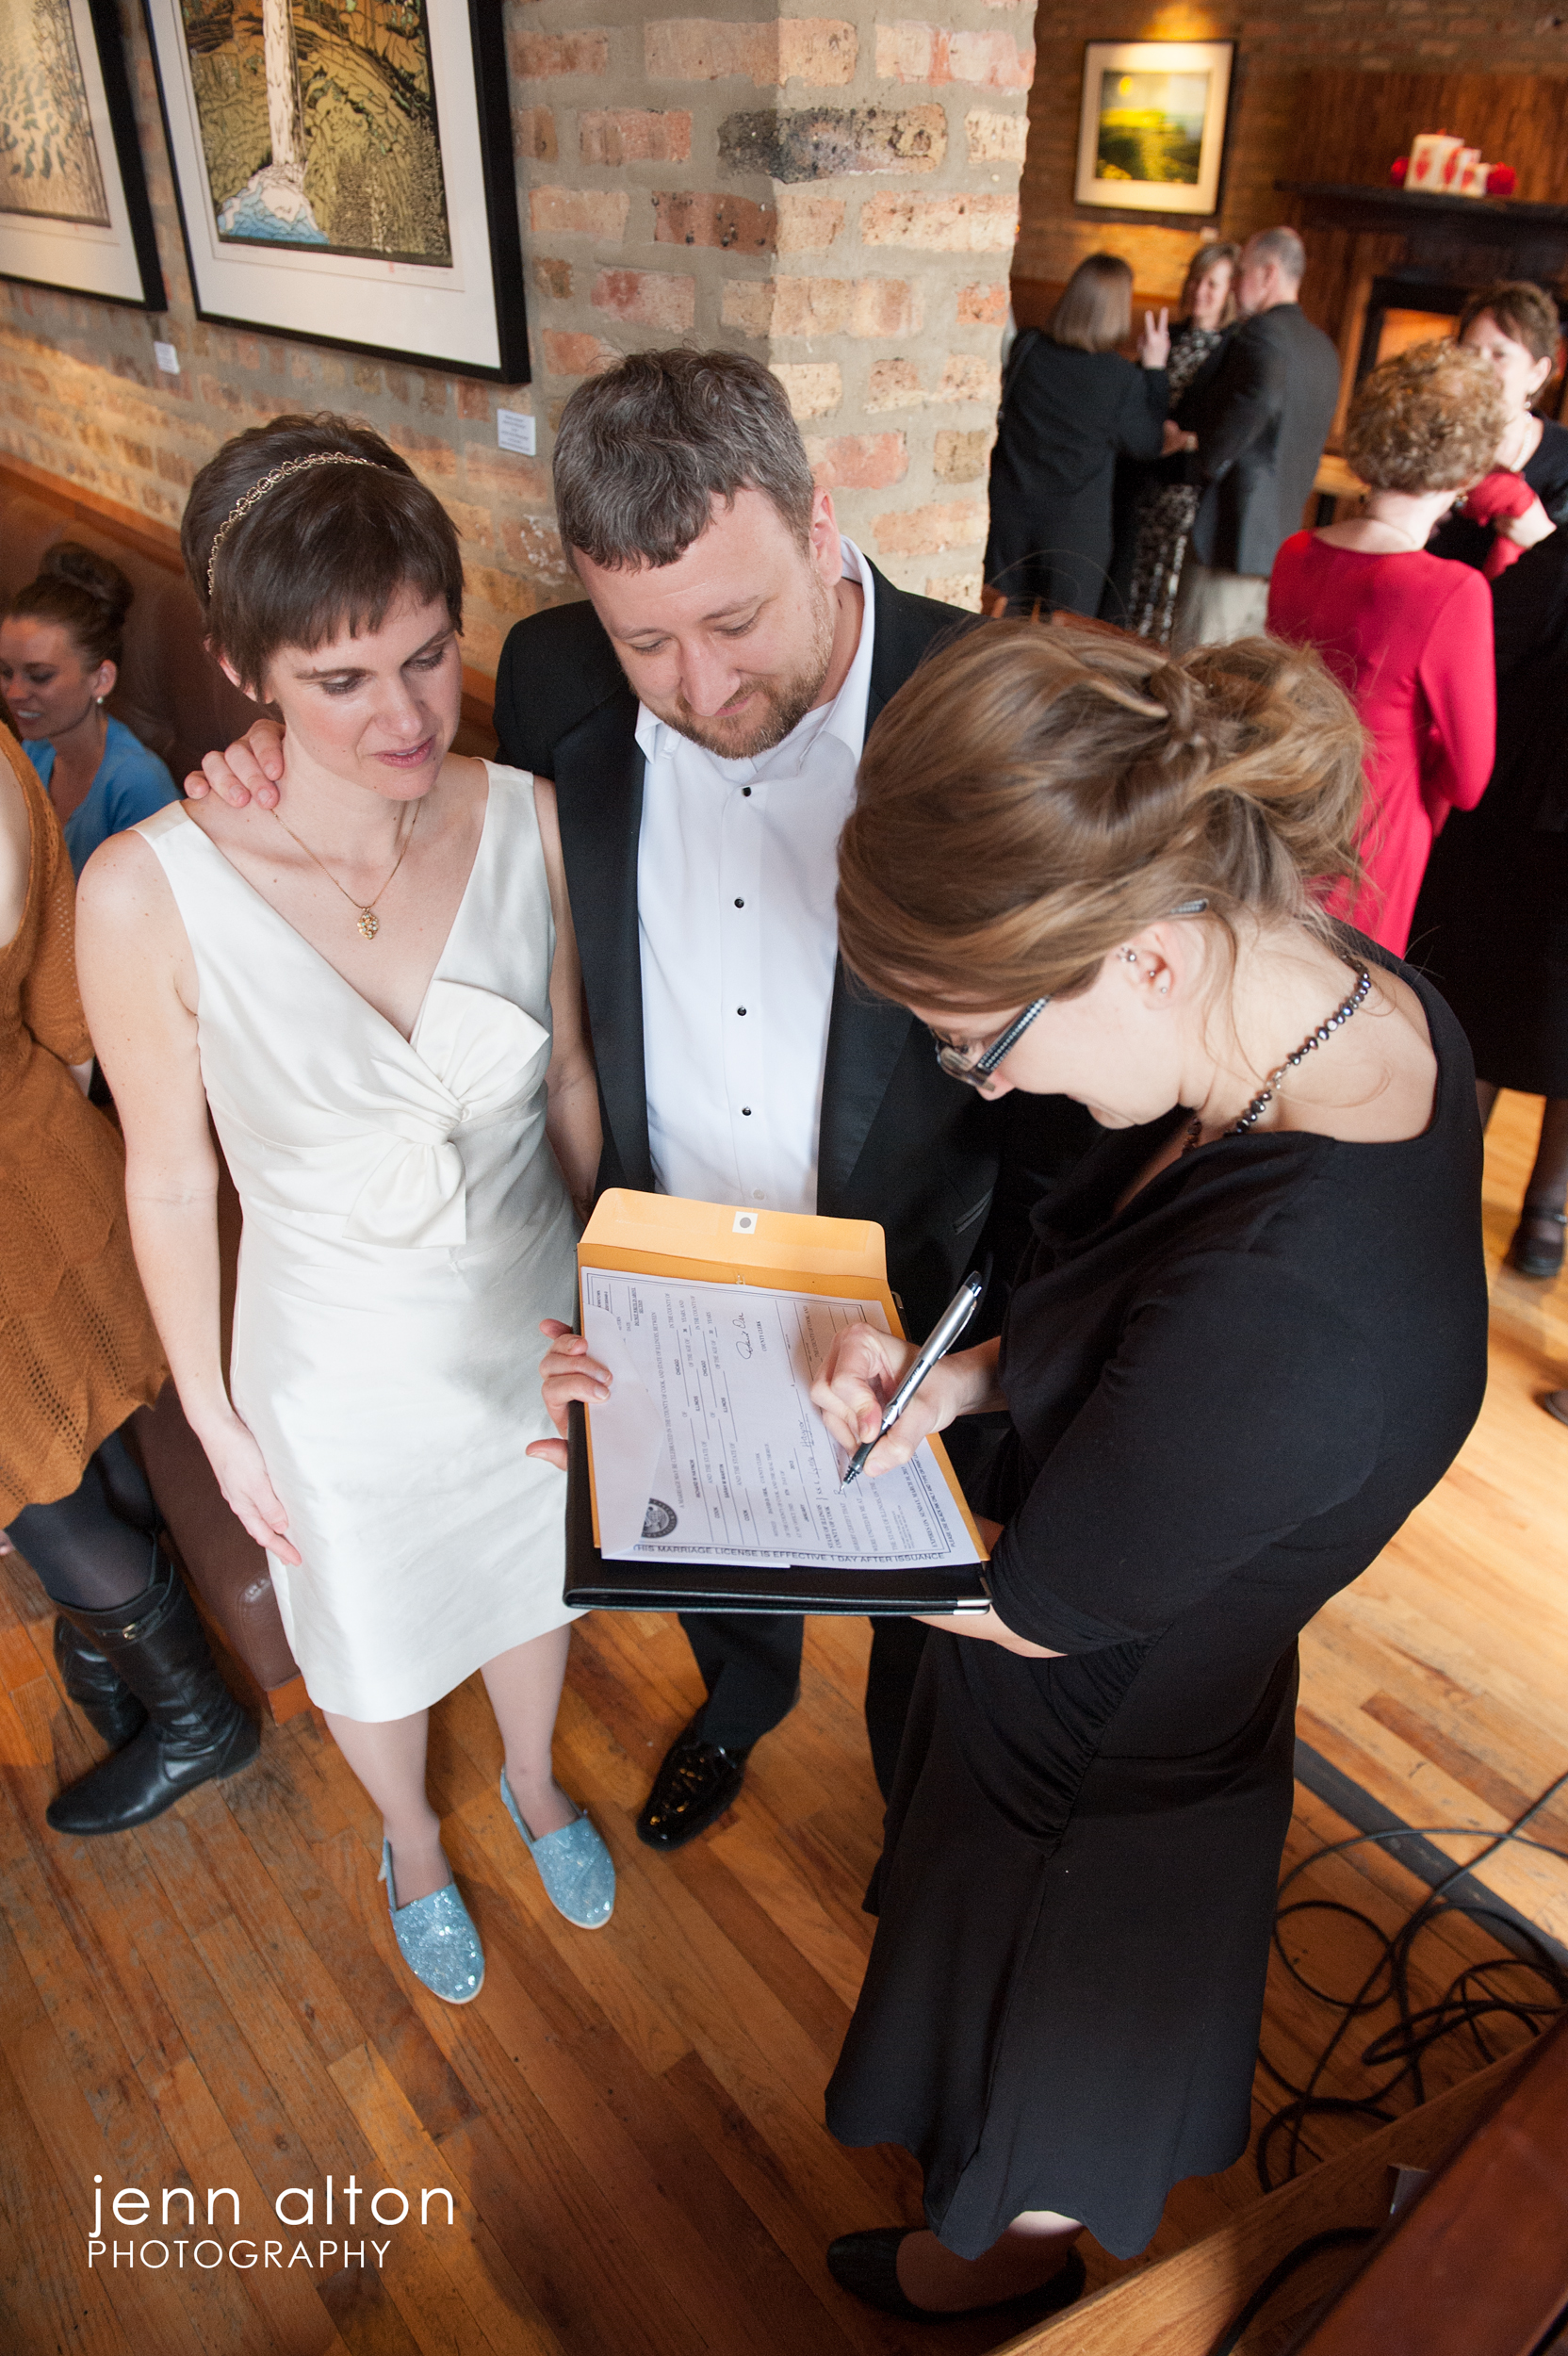 Bride, groom and officiant, Signing offical paperwork,  Uncommon Ground on Devon, Chicago, IL.